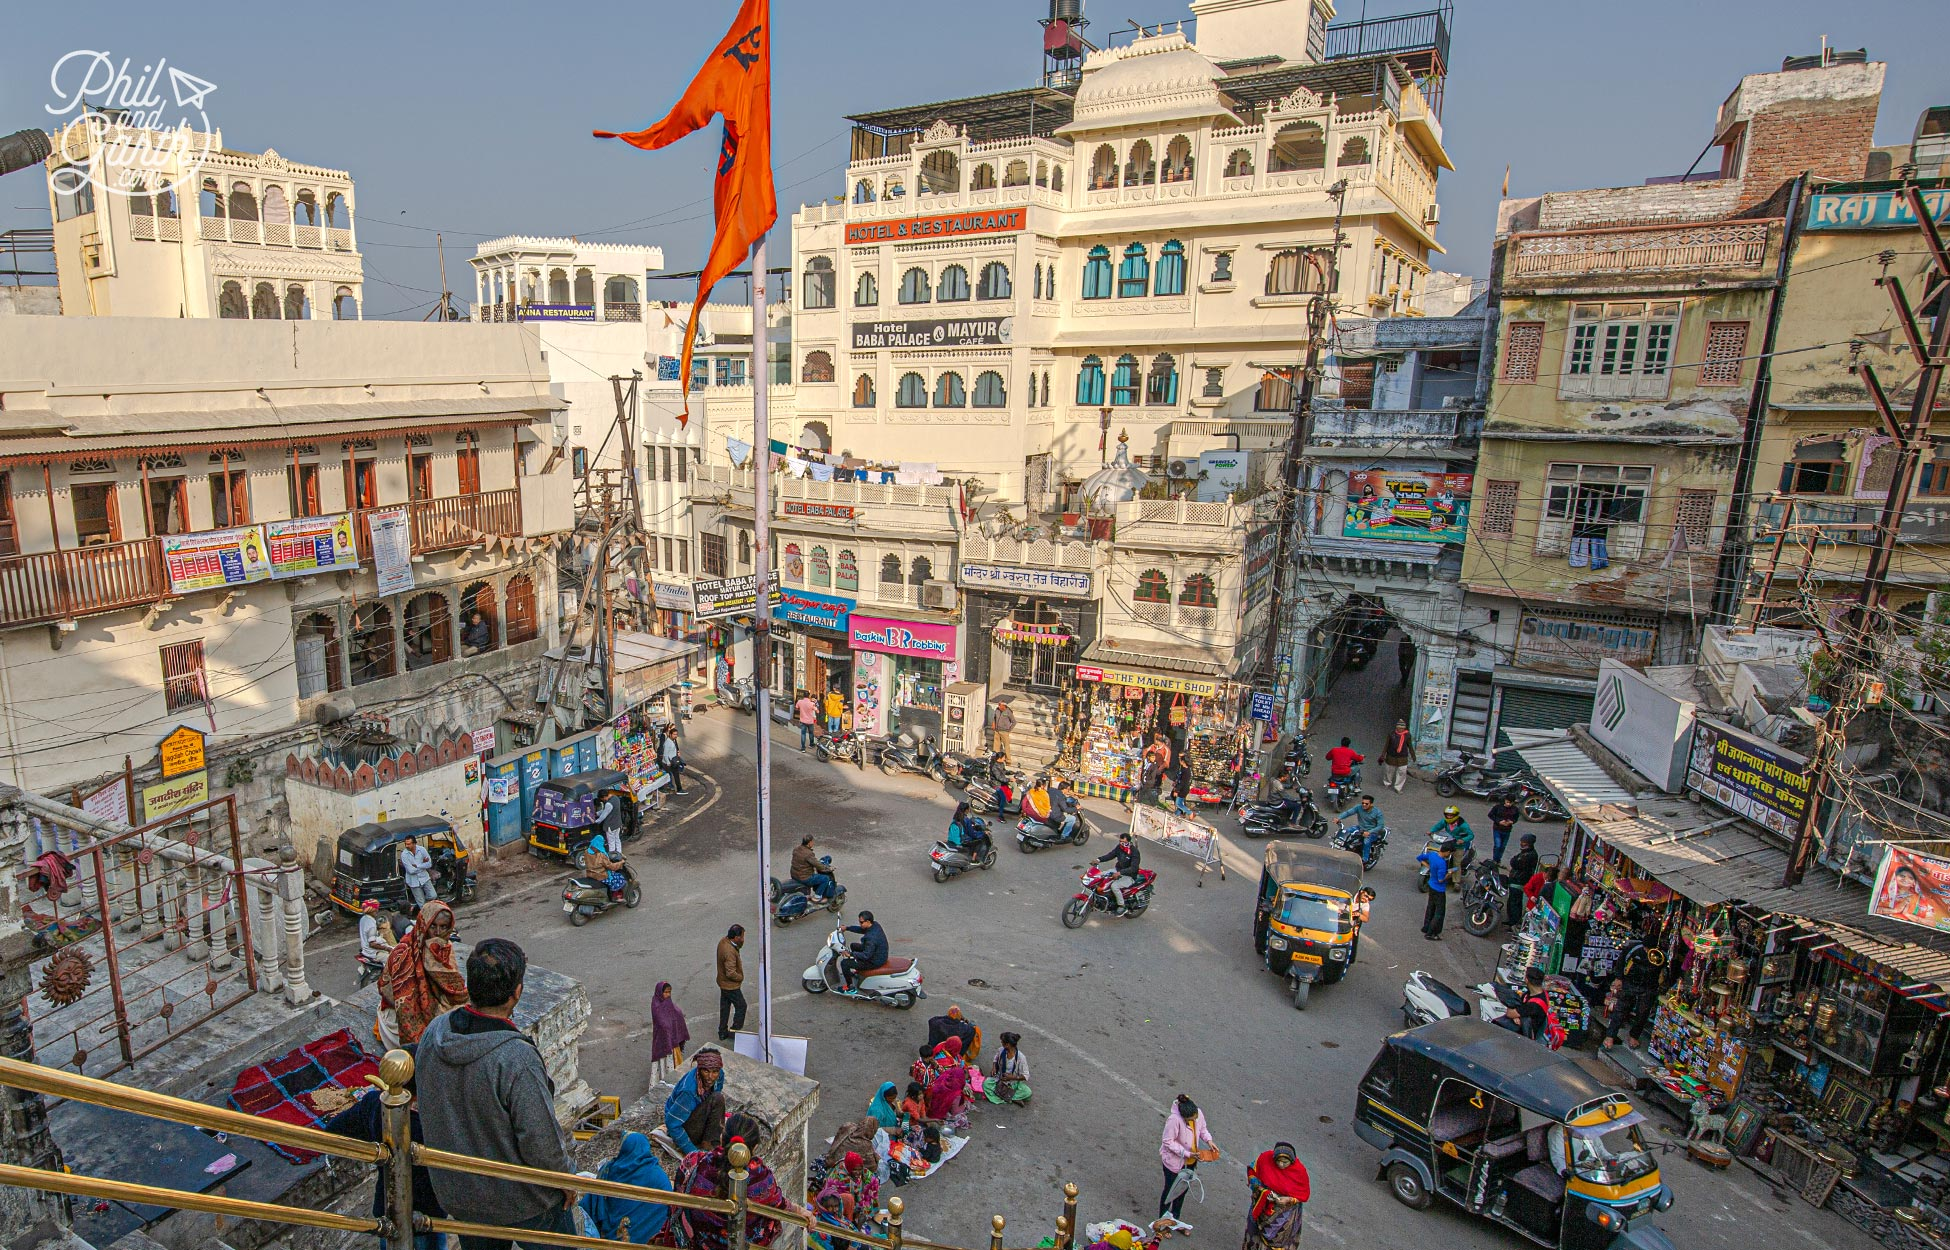 Looking down at the street scenes of Jagdish Chowk